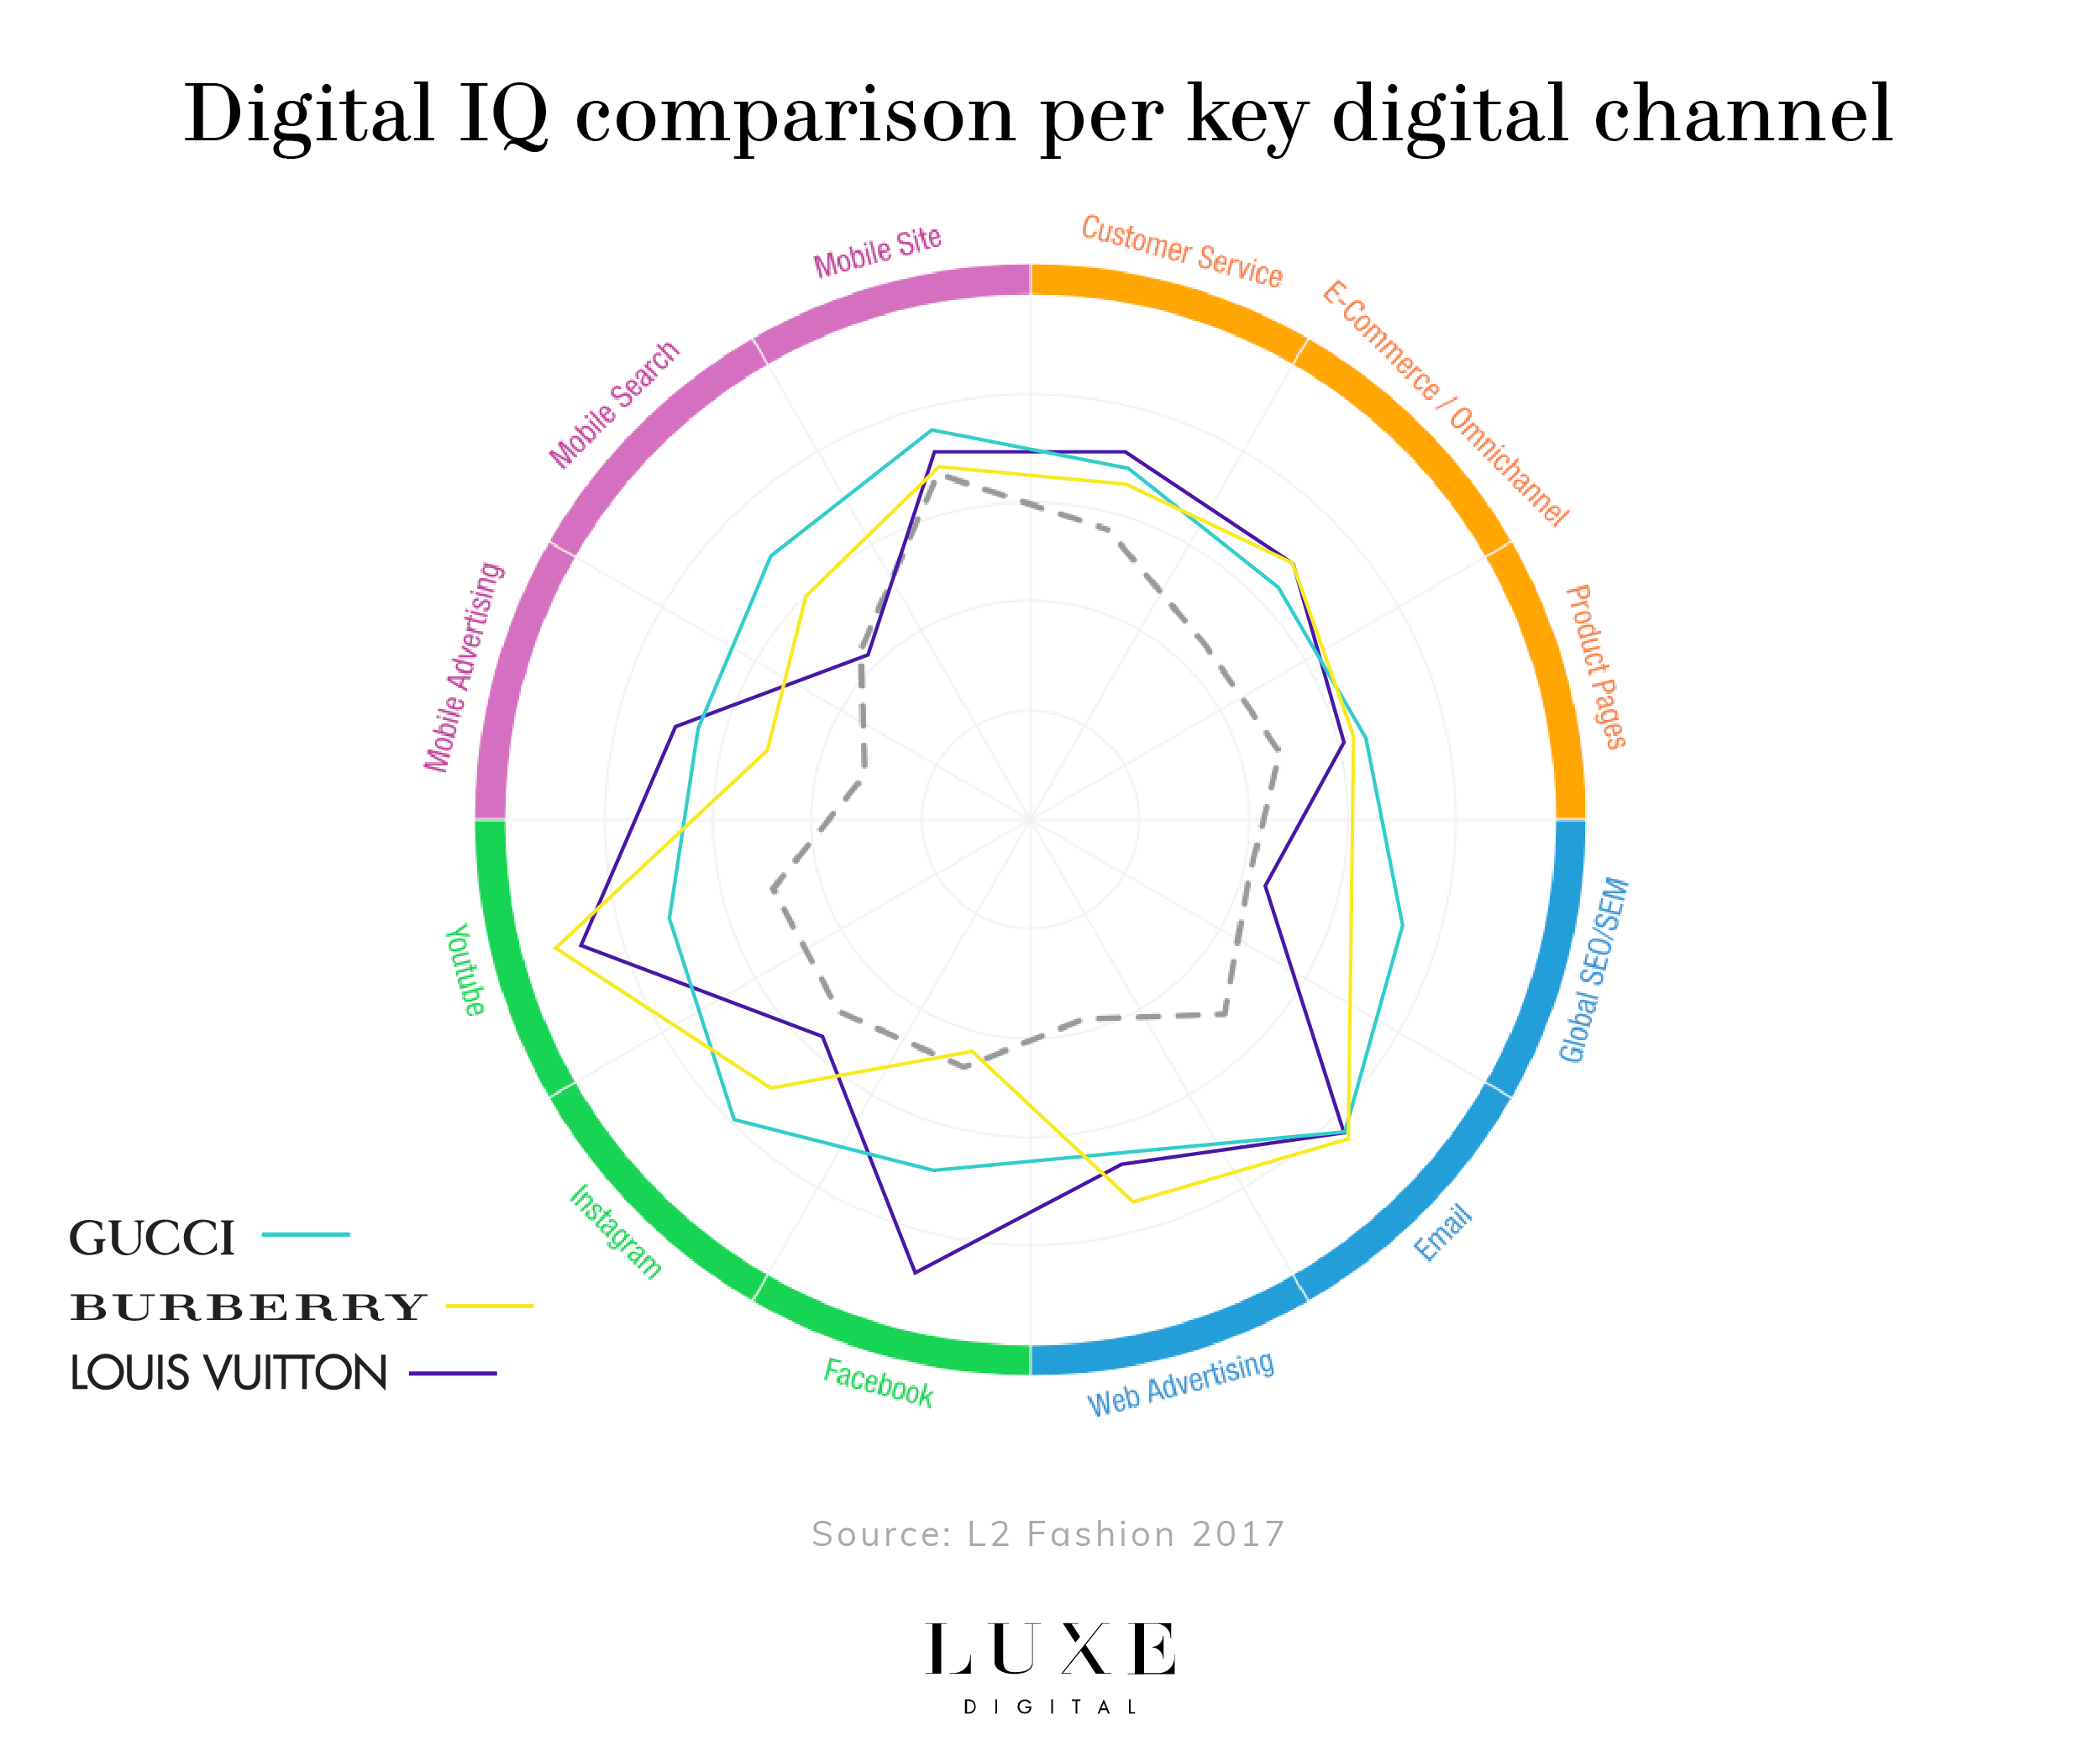 Digital IQ Index Gucci Louis Vuitton Burberry Luxe Digital luxury fashion Millennials